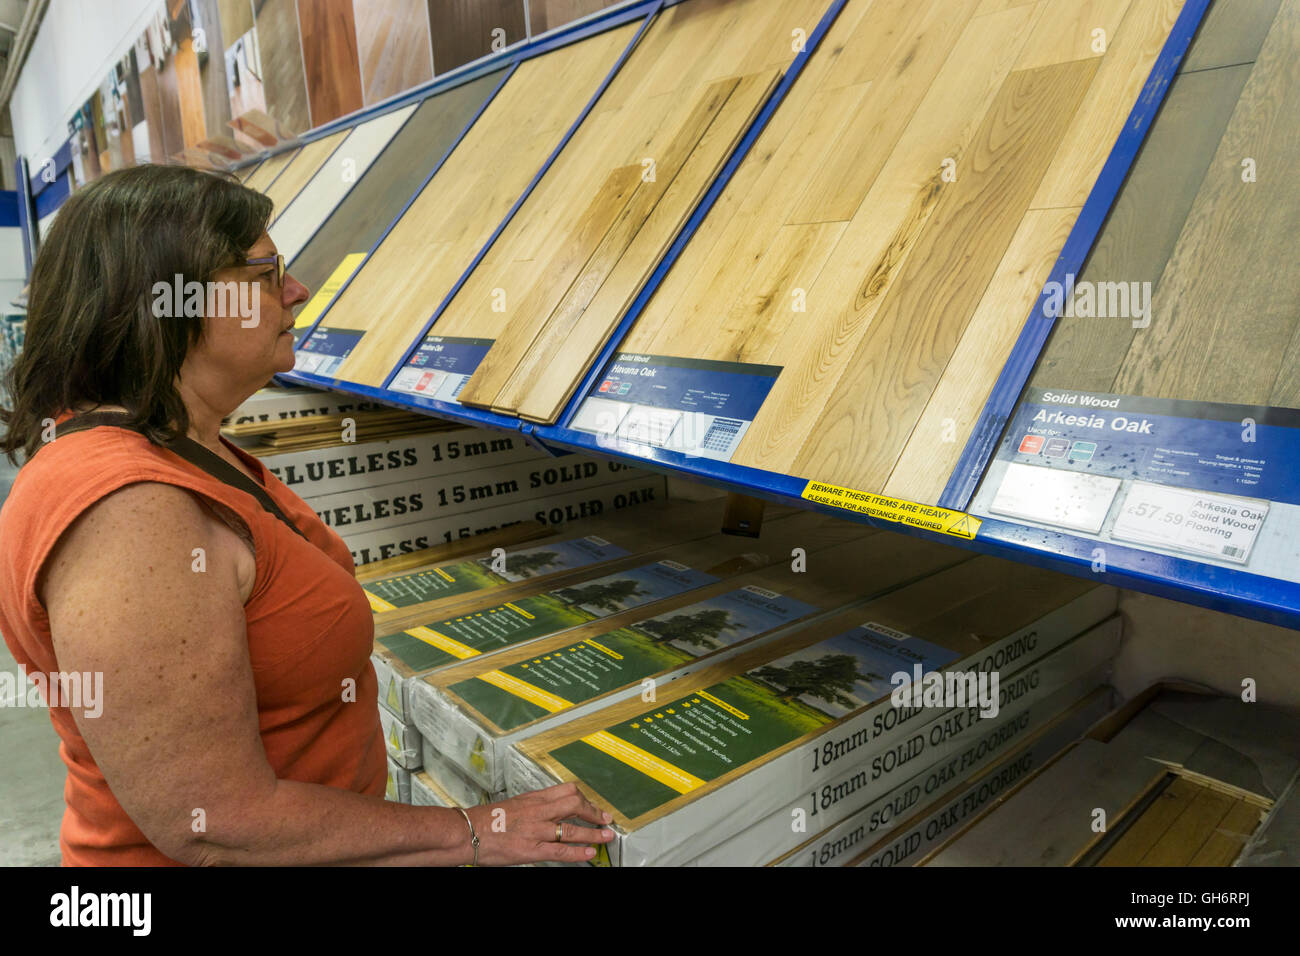 Woman looking at a display of laminate wooden flooring in a branch of Wickes DIY stores. - Stock Image